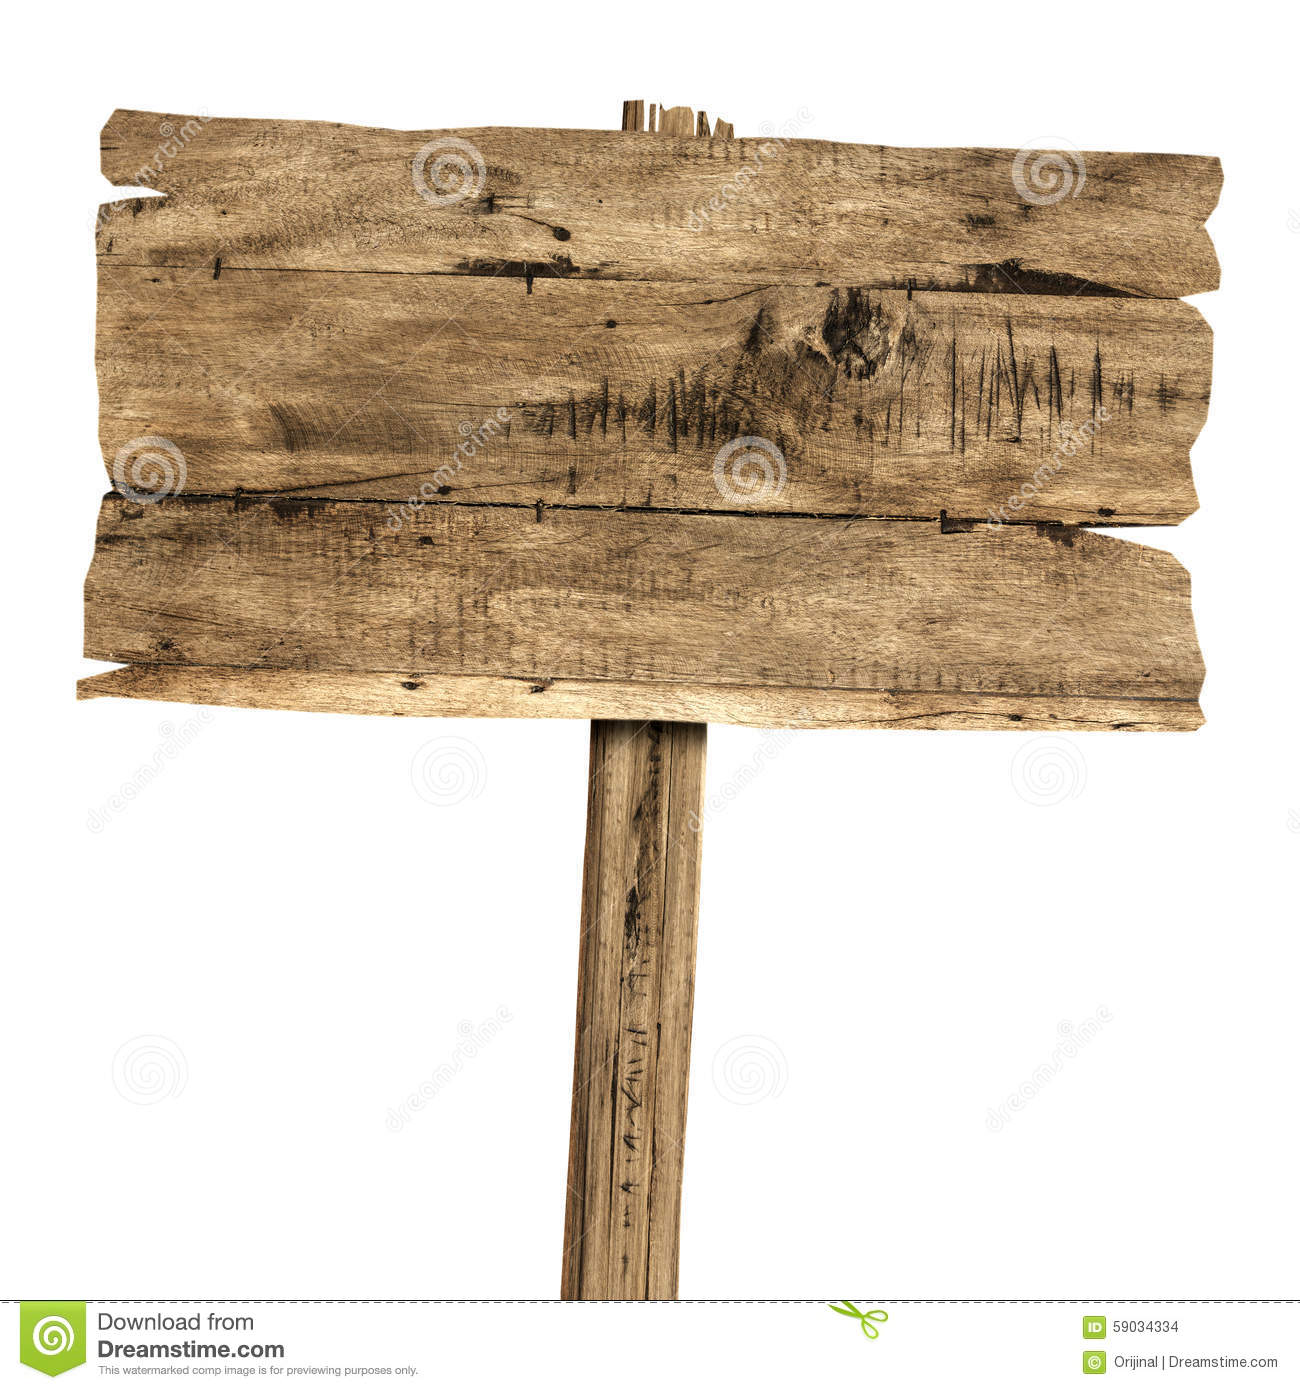 Wooden Sign Isolated On White Wood Old Planks Sign Stock. Kingdom Hearts Decals. Cardiac Signs Of Stroke. Hangul Lettering. Lookhuman Stickers. Scales Signs Of Stroke. Weeping Signs. Cartoon Space Murals. Proportional Signs